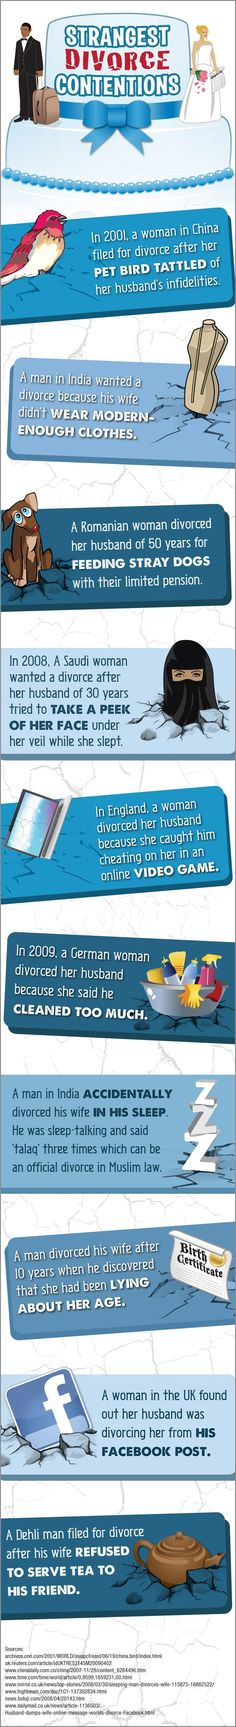 Craaazy Reasons for Divorce [Infographic]   Legal News   Lawyers.com   Divorced because the husband got caught cheating on her in an online video game was the best!